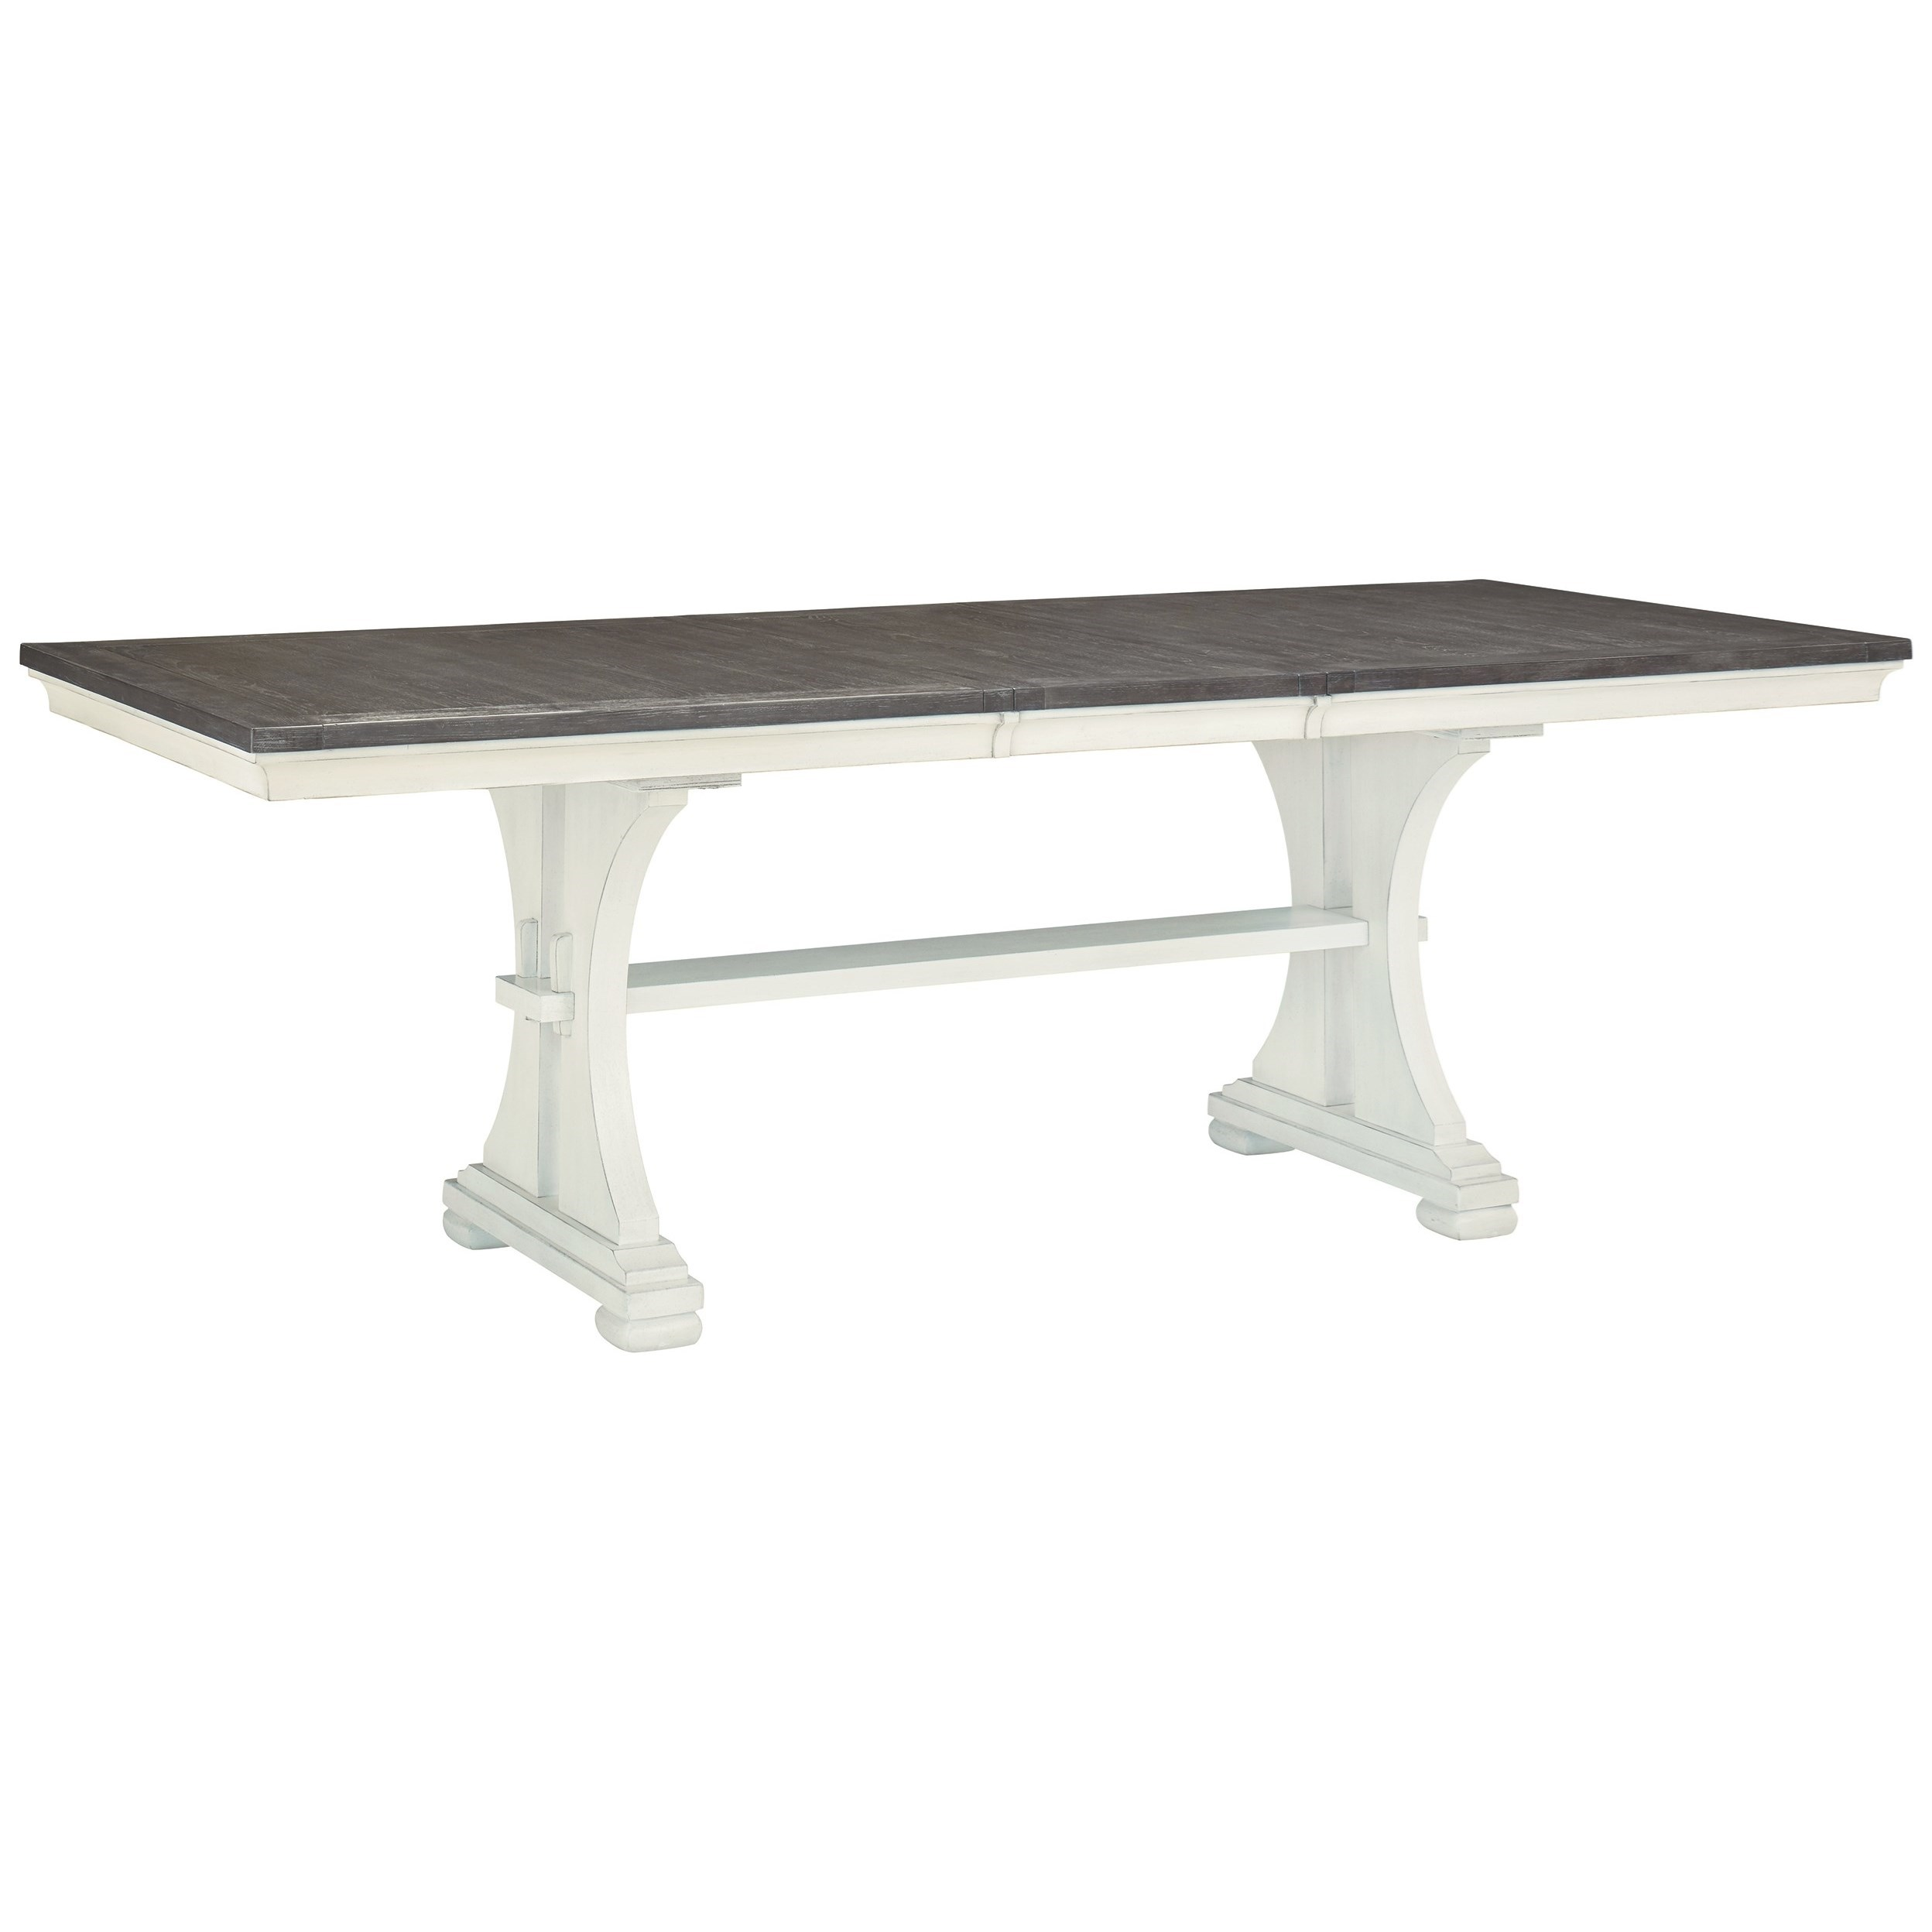 Nashbryn Dining Table by Benchcraft at Walker's Furniture